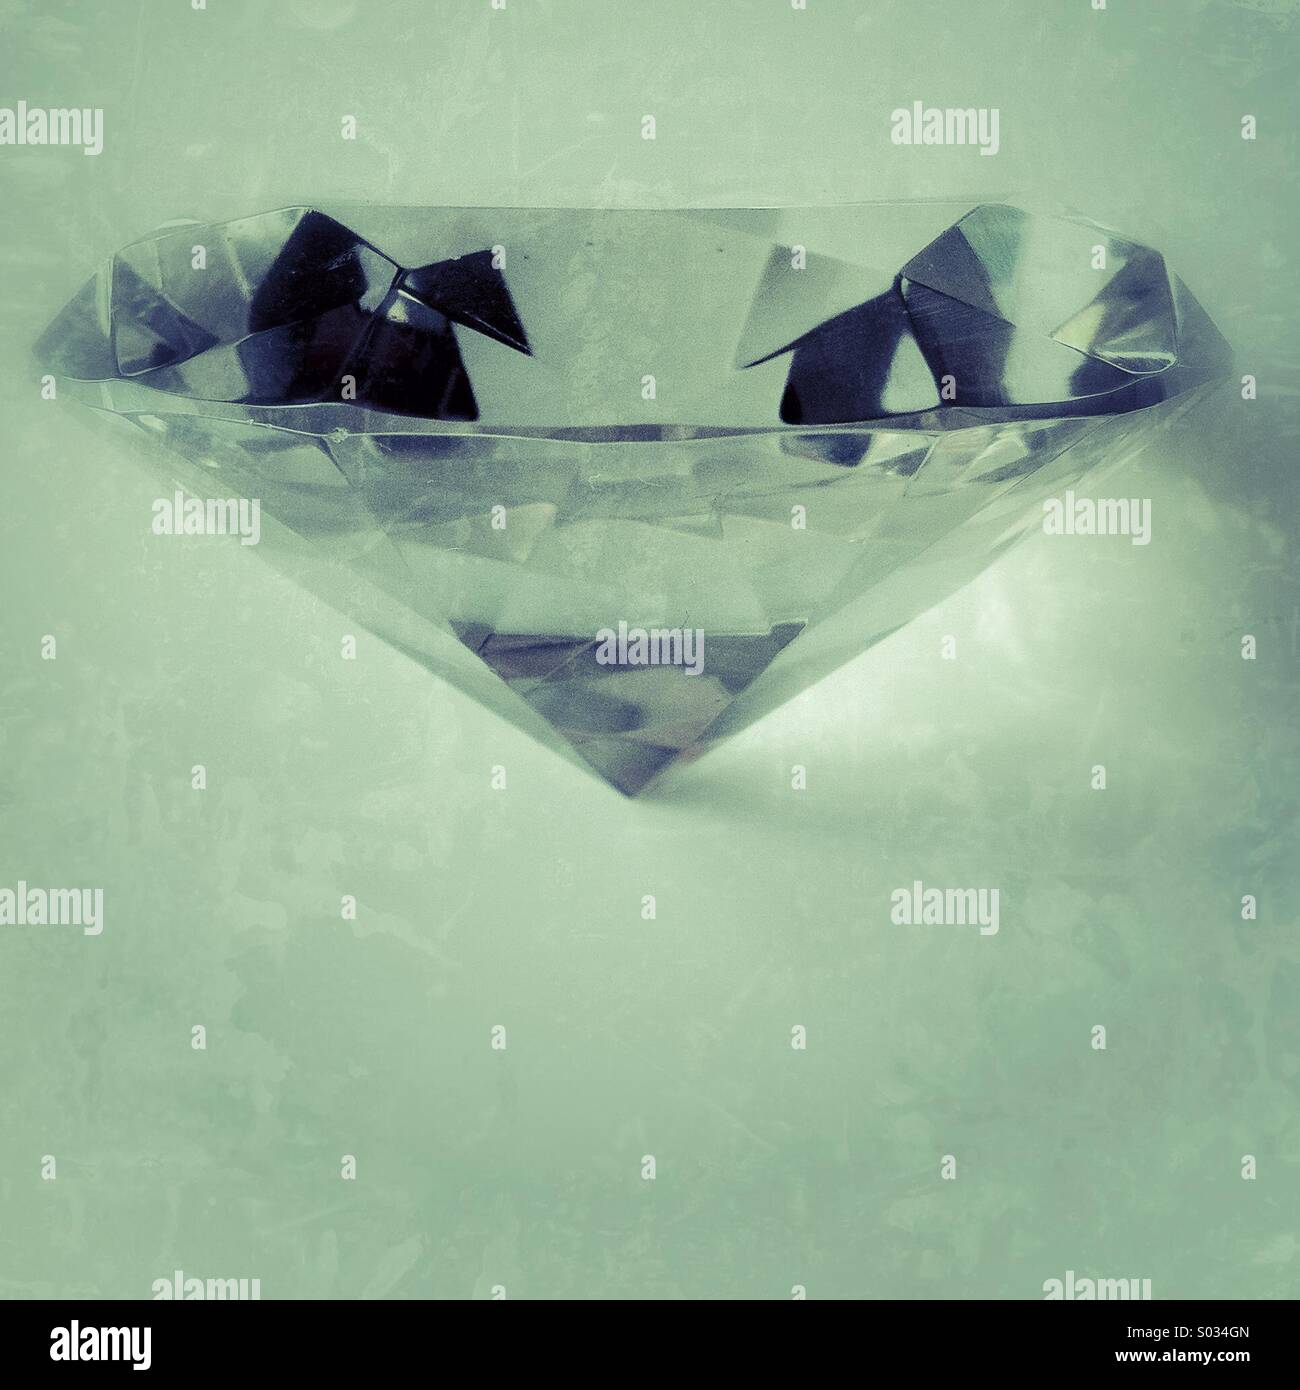 Diamond - Stock Image